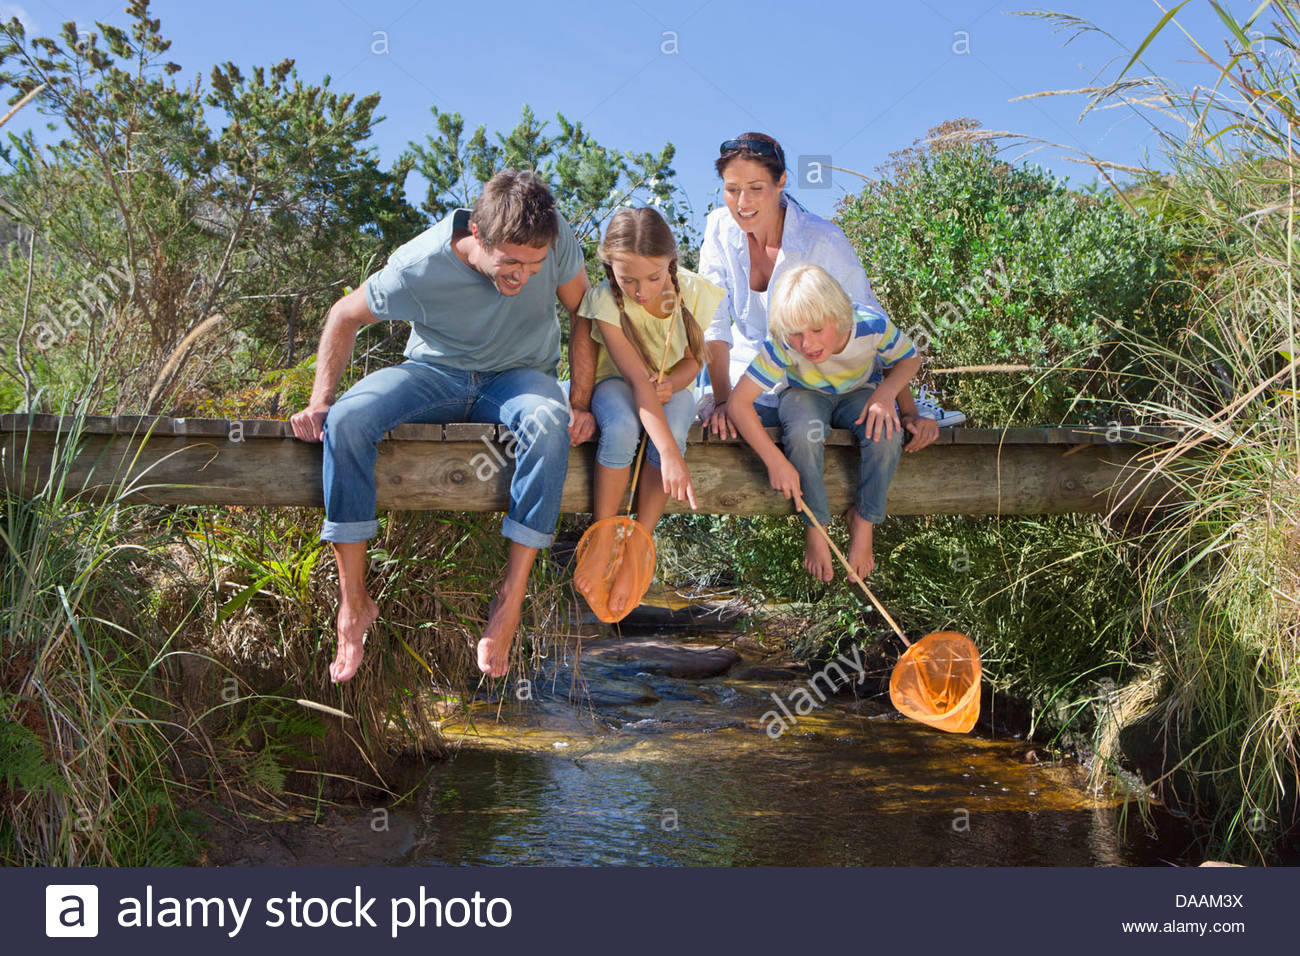 http://c7.alamy.com/comp/DAAM3X/family-with-fishing-nets-sitting-barefoot-on-footbridge-and-looking-DAAM3X.jpg